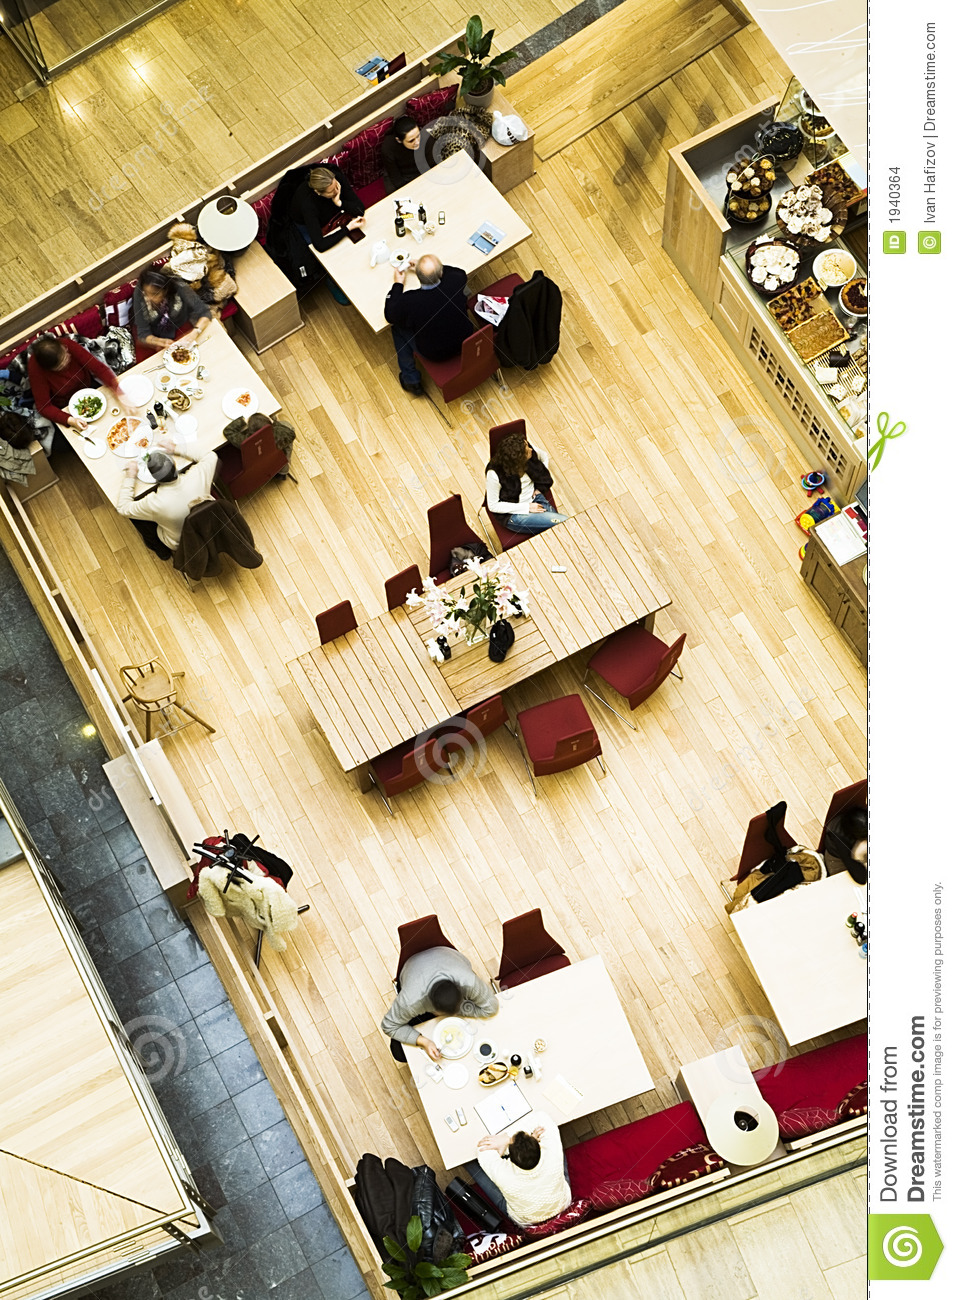 Cafe. top view.